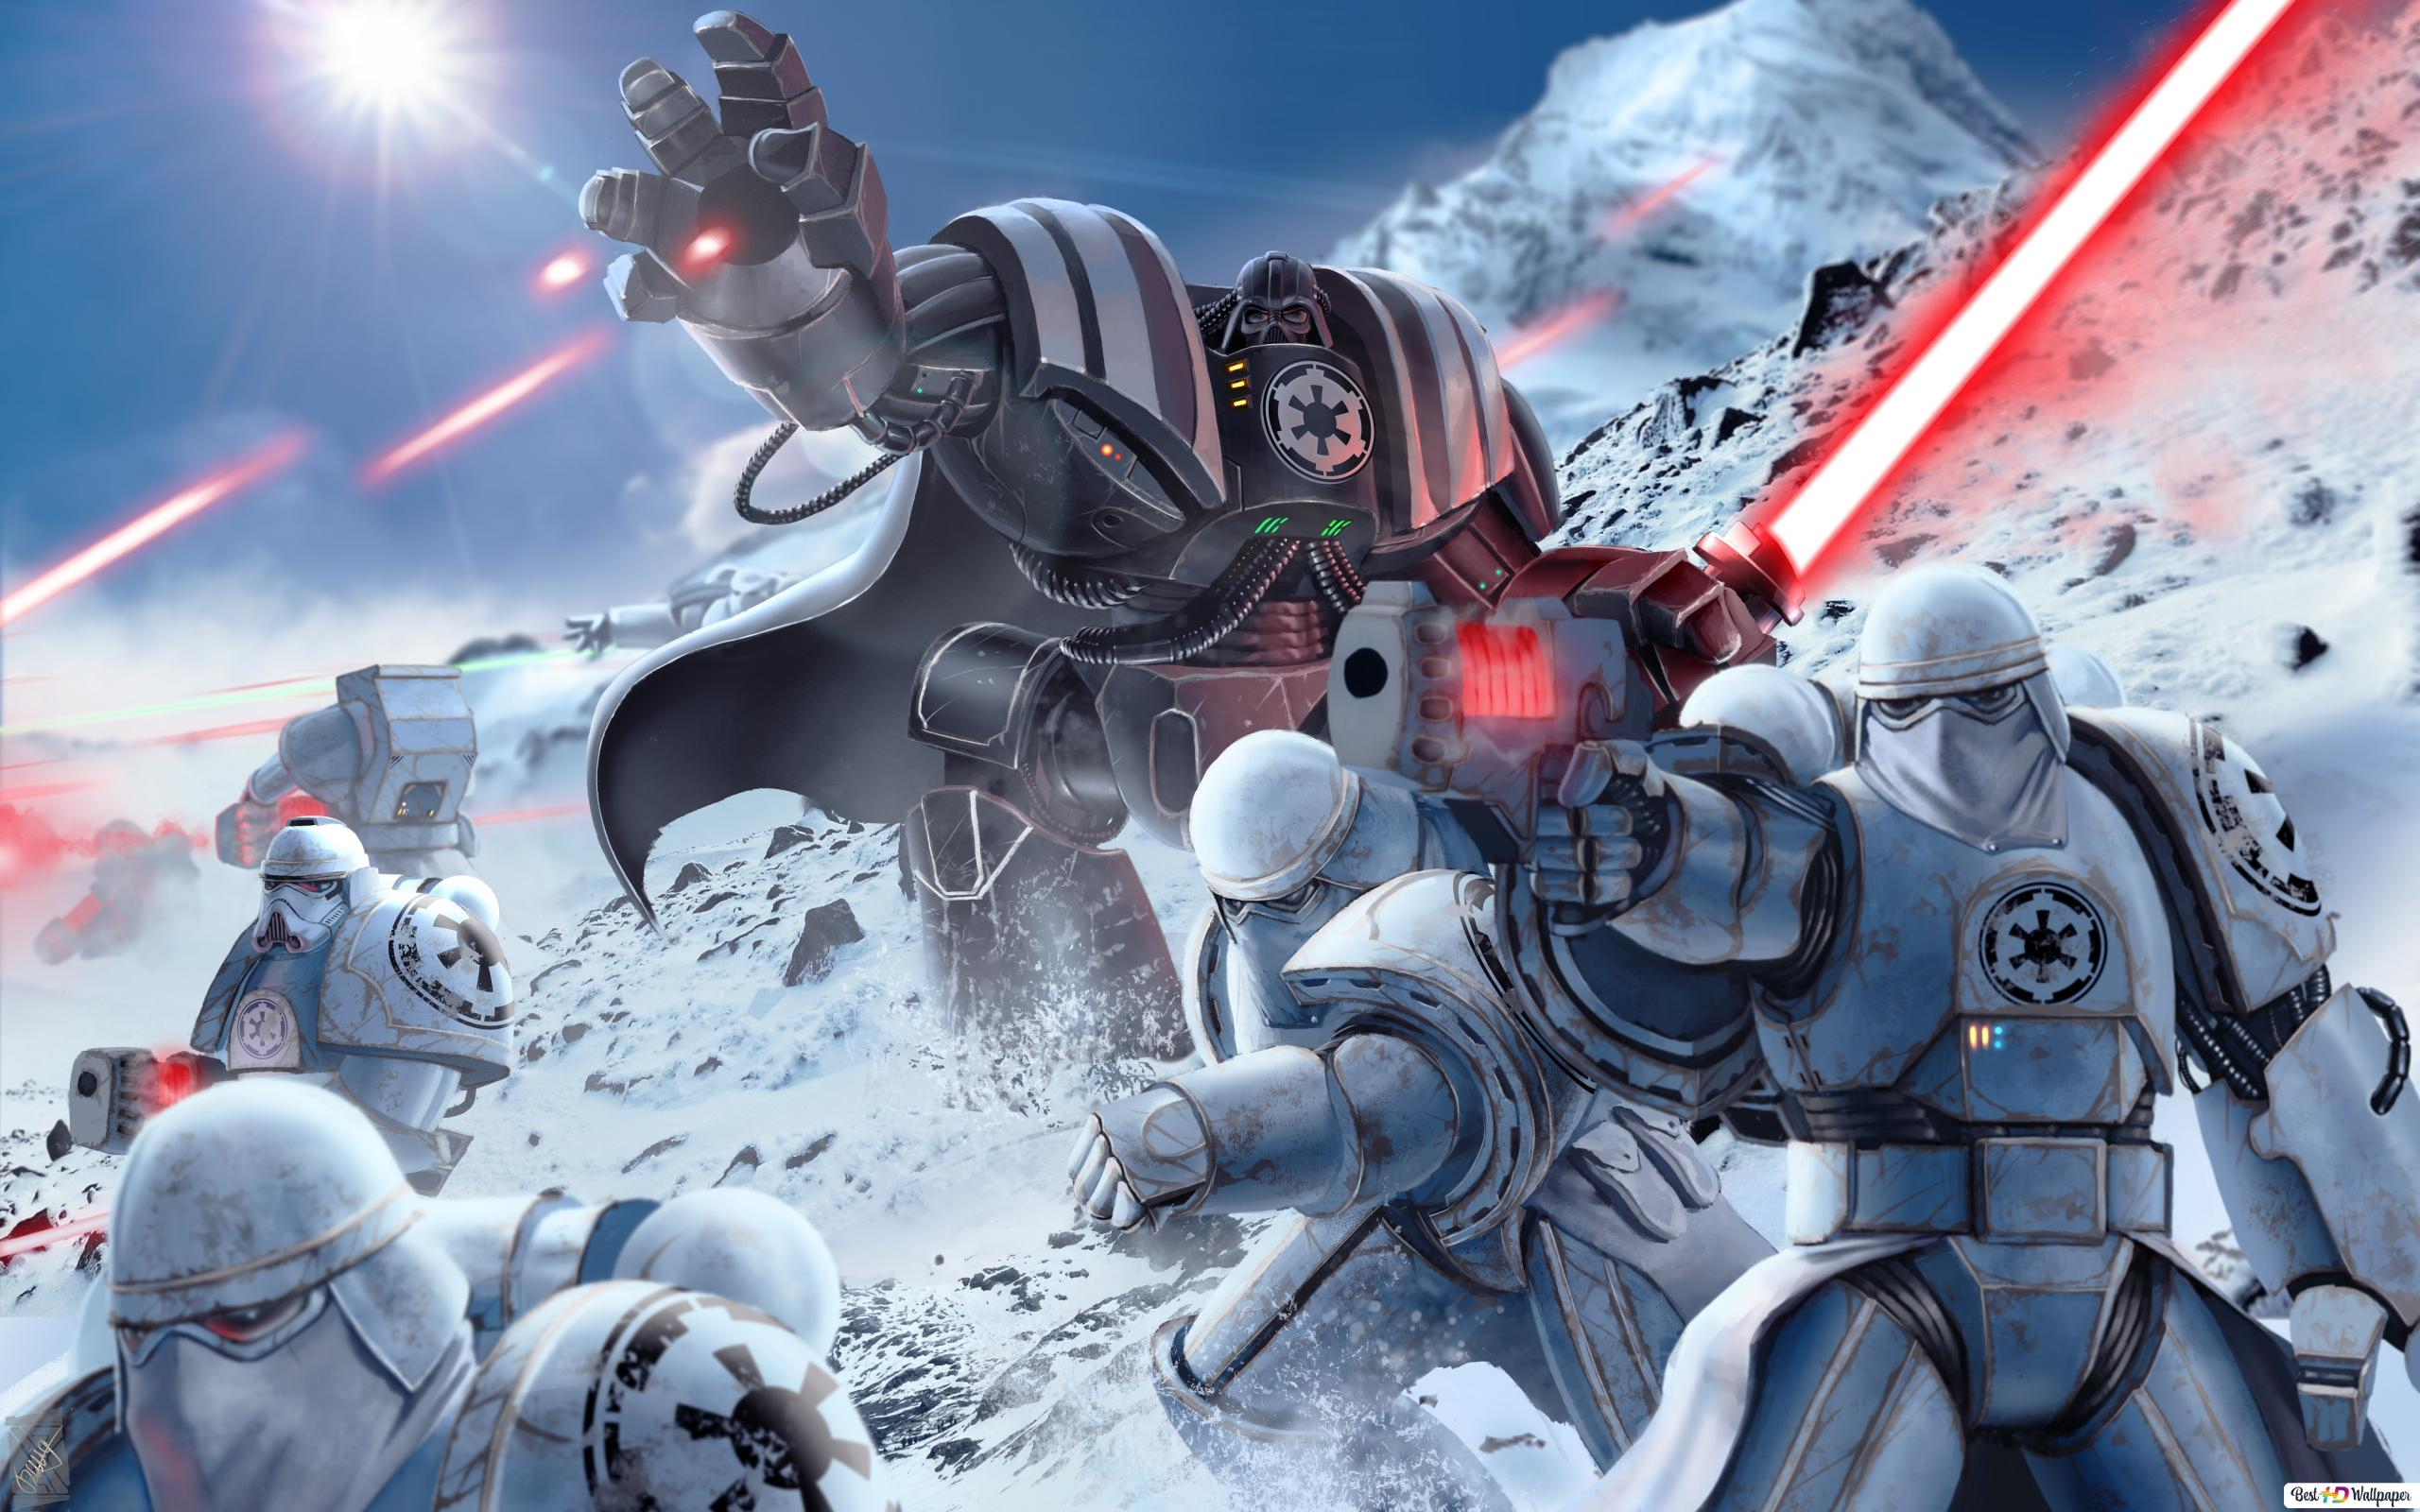 star wars darth vader with stormtroopers wallpaper 2560x1600 19704 7